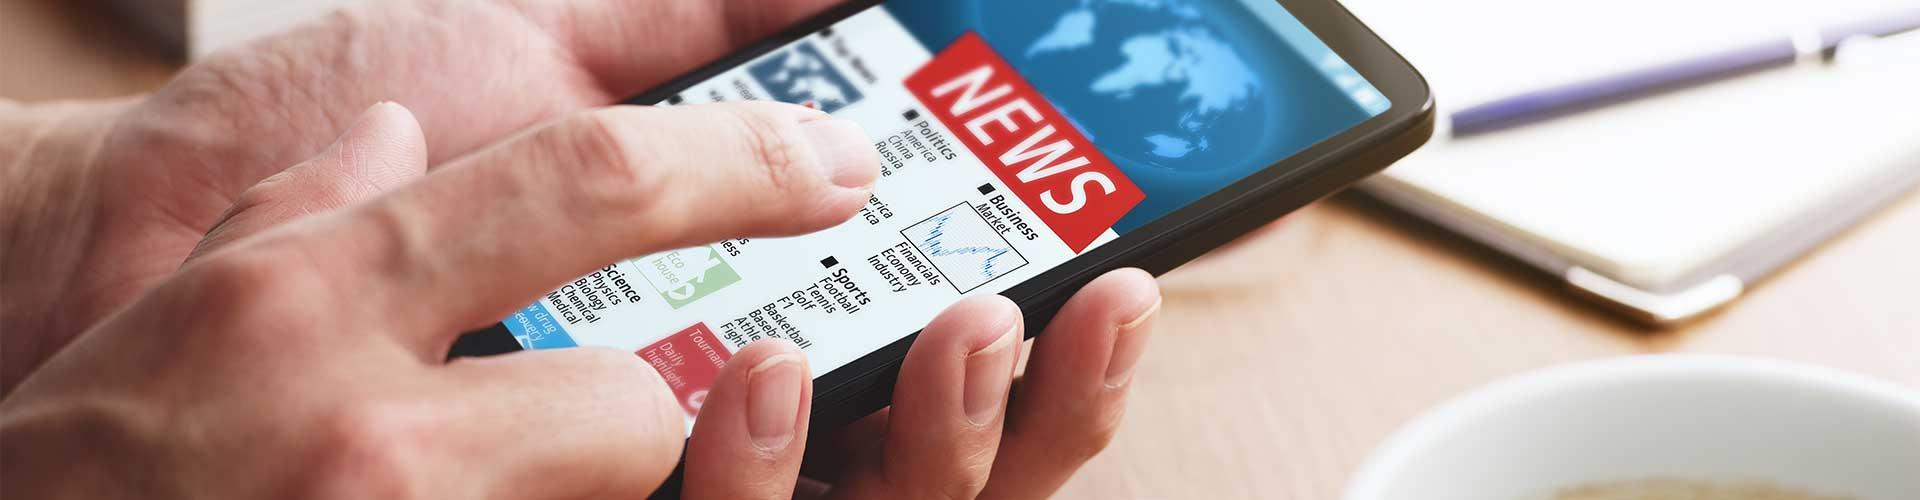 Stock photo of navigating news on smartphone